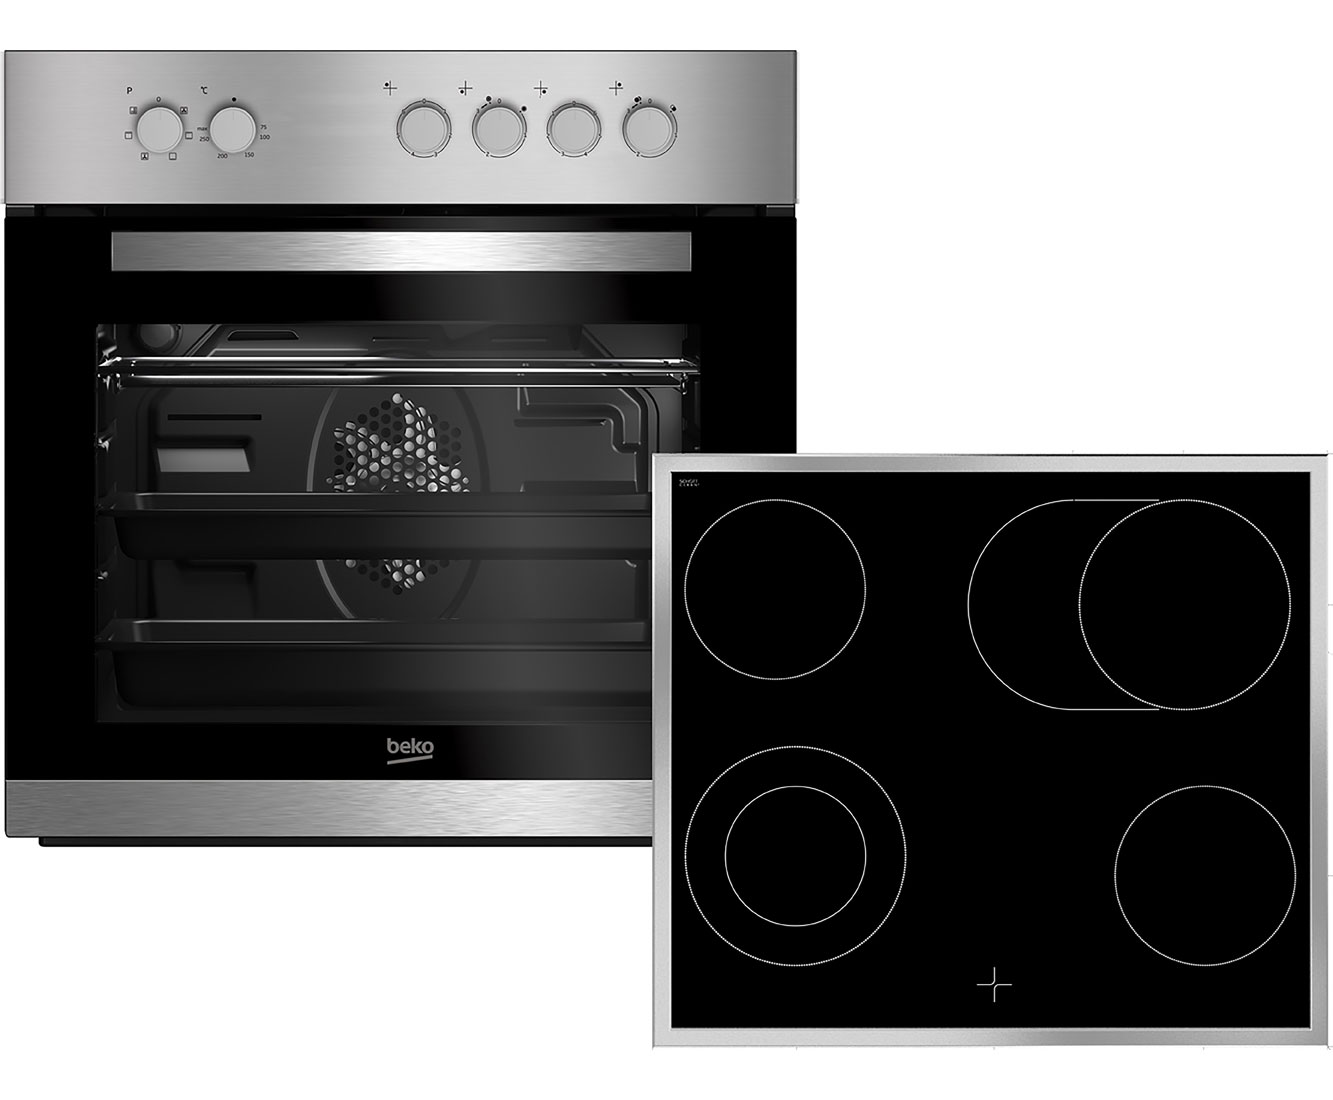 beko buc22020x backofen kochfeld kombination a 75l innenraum edelstahl. Black Bedroom Furniture Sets. Home Design Ideas